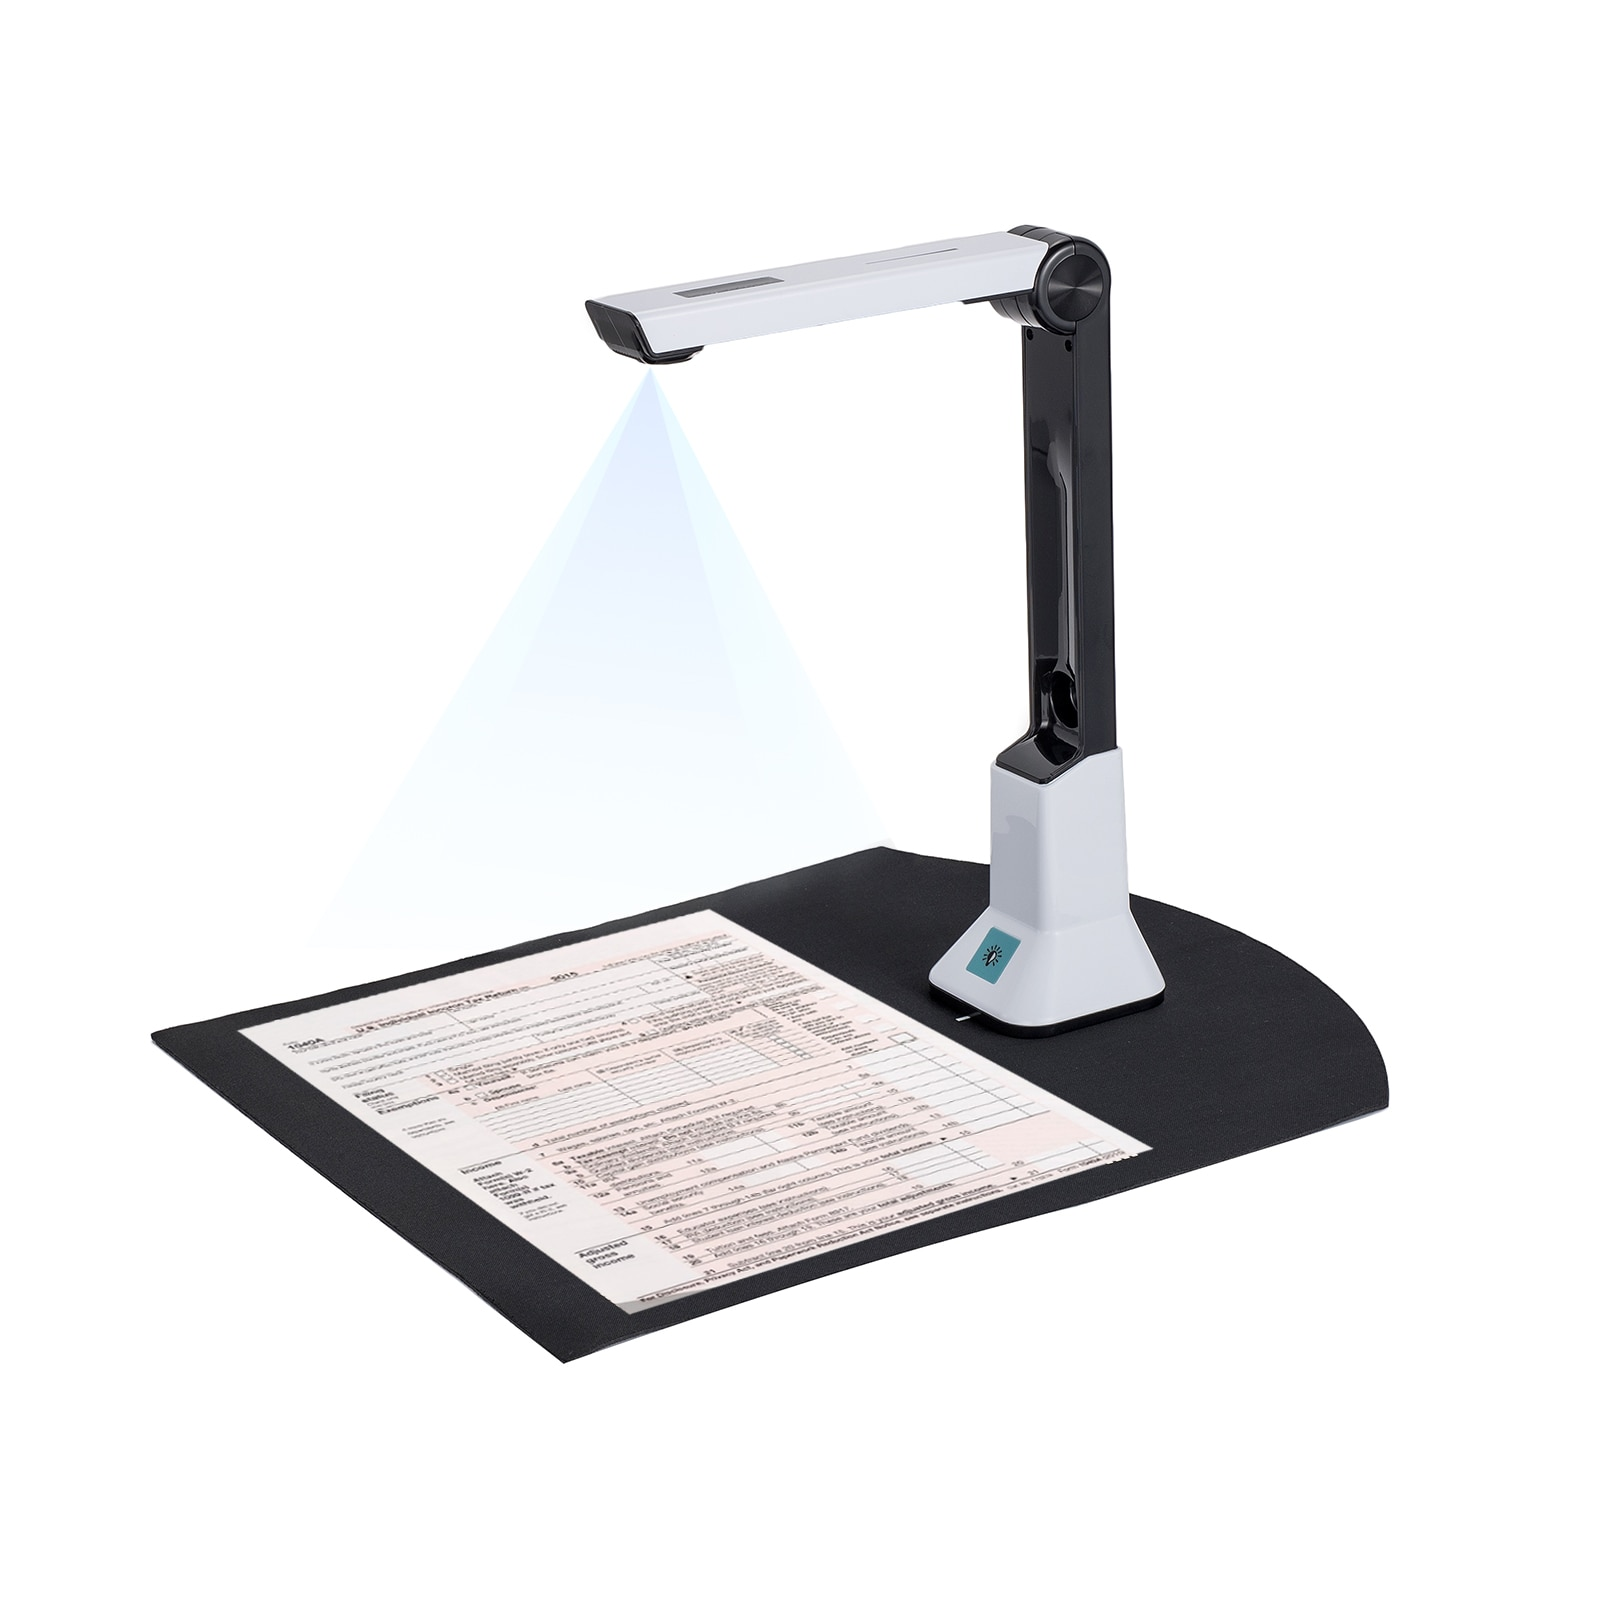 Scanner Book & Document , 8 Million Mega-pixel, Camera, Capture Size A4, For Windows, English Software, For Office, Teaching